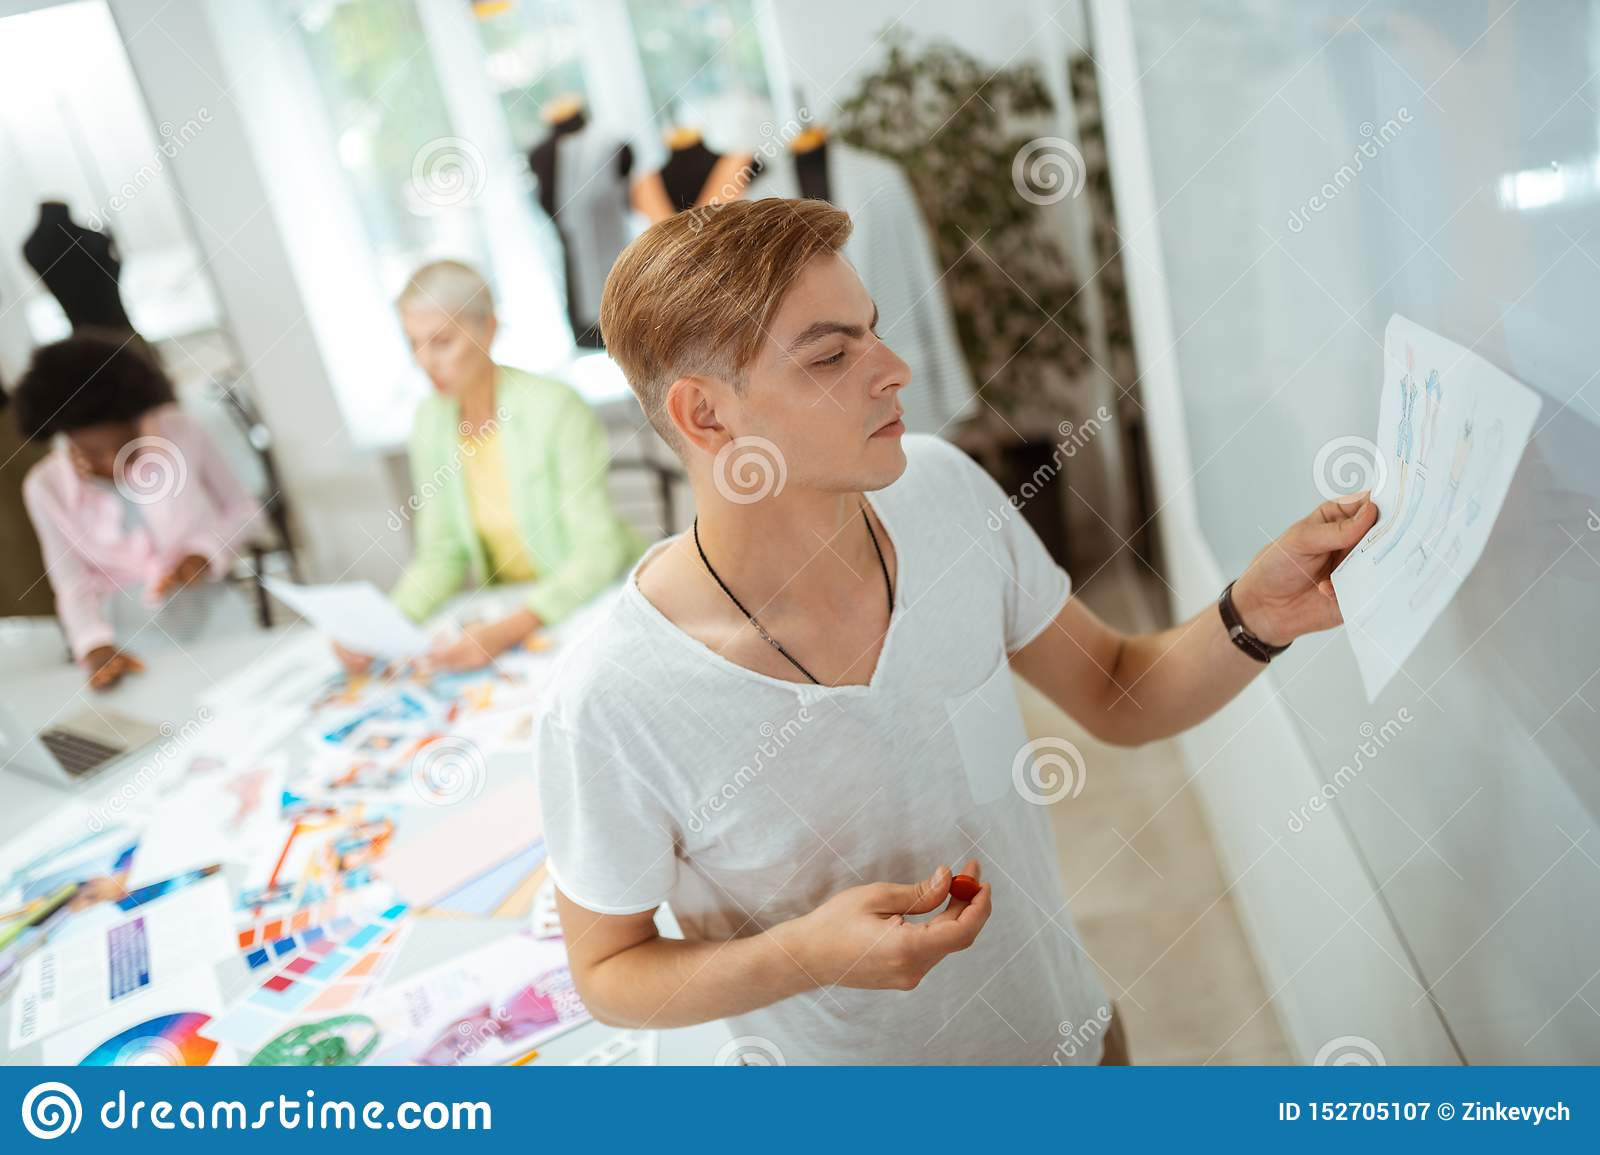 Motivated blond young man looking at his sketch